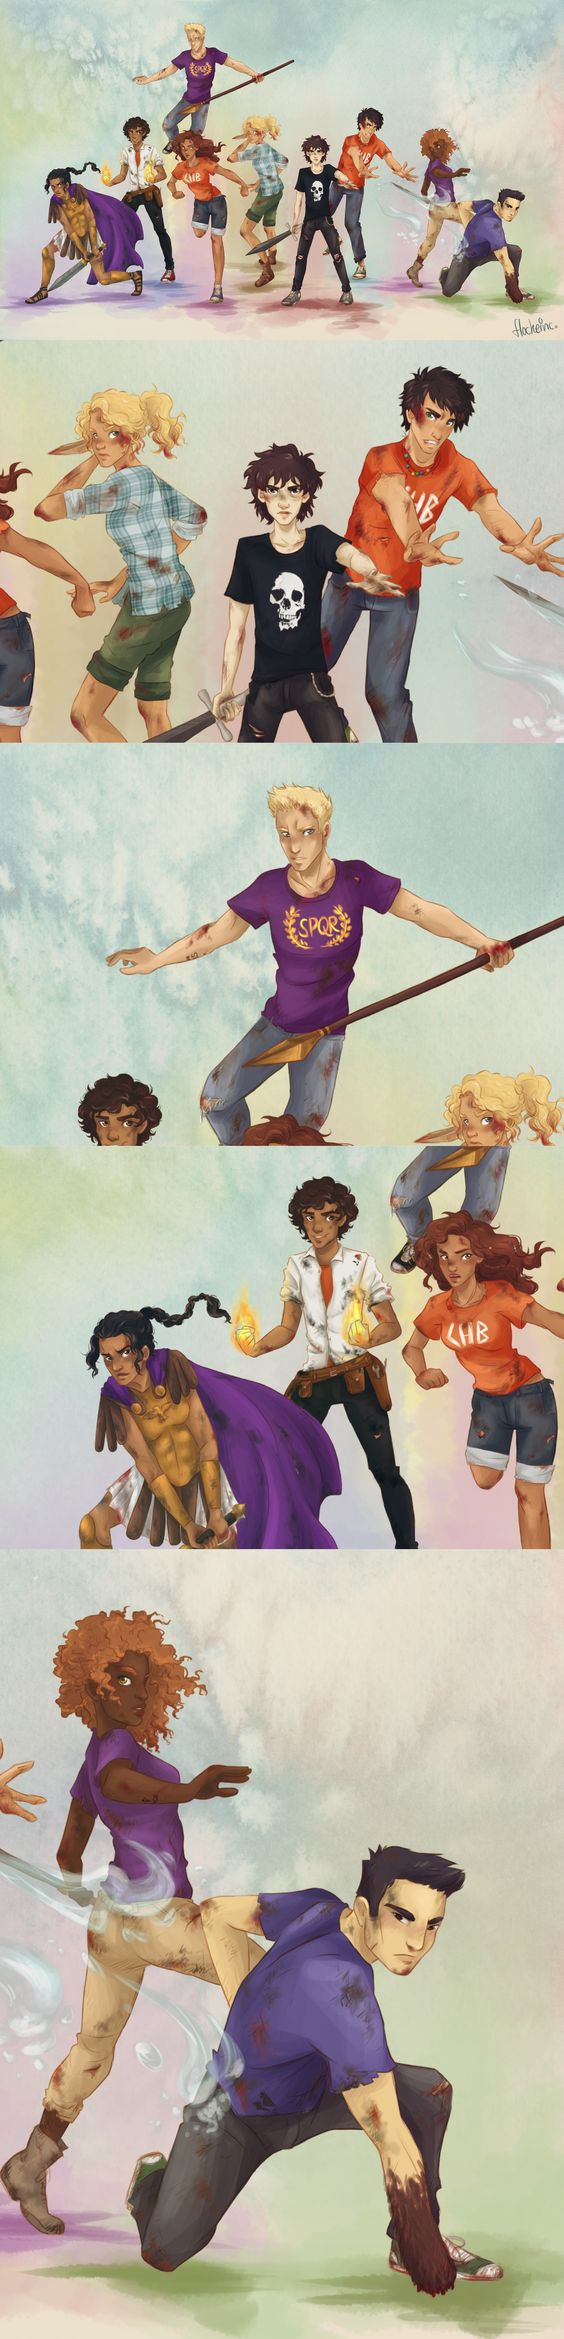 Heroes of Olympus characters. I wish I knew who the artist was!